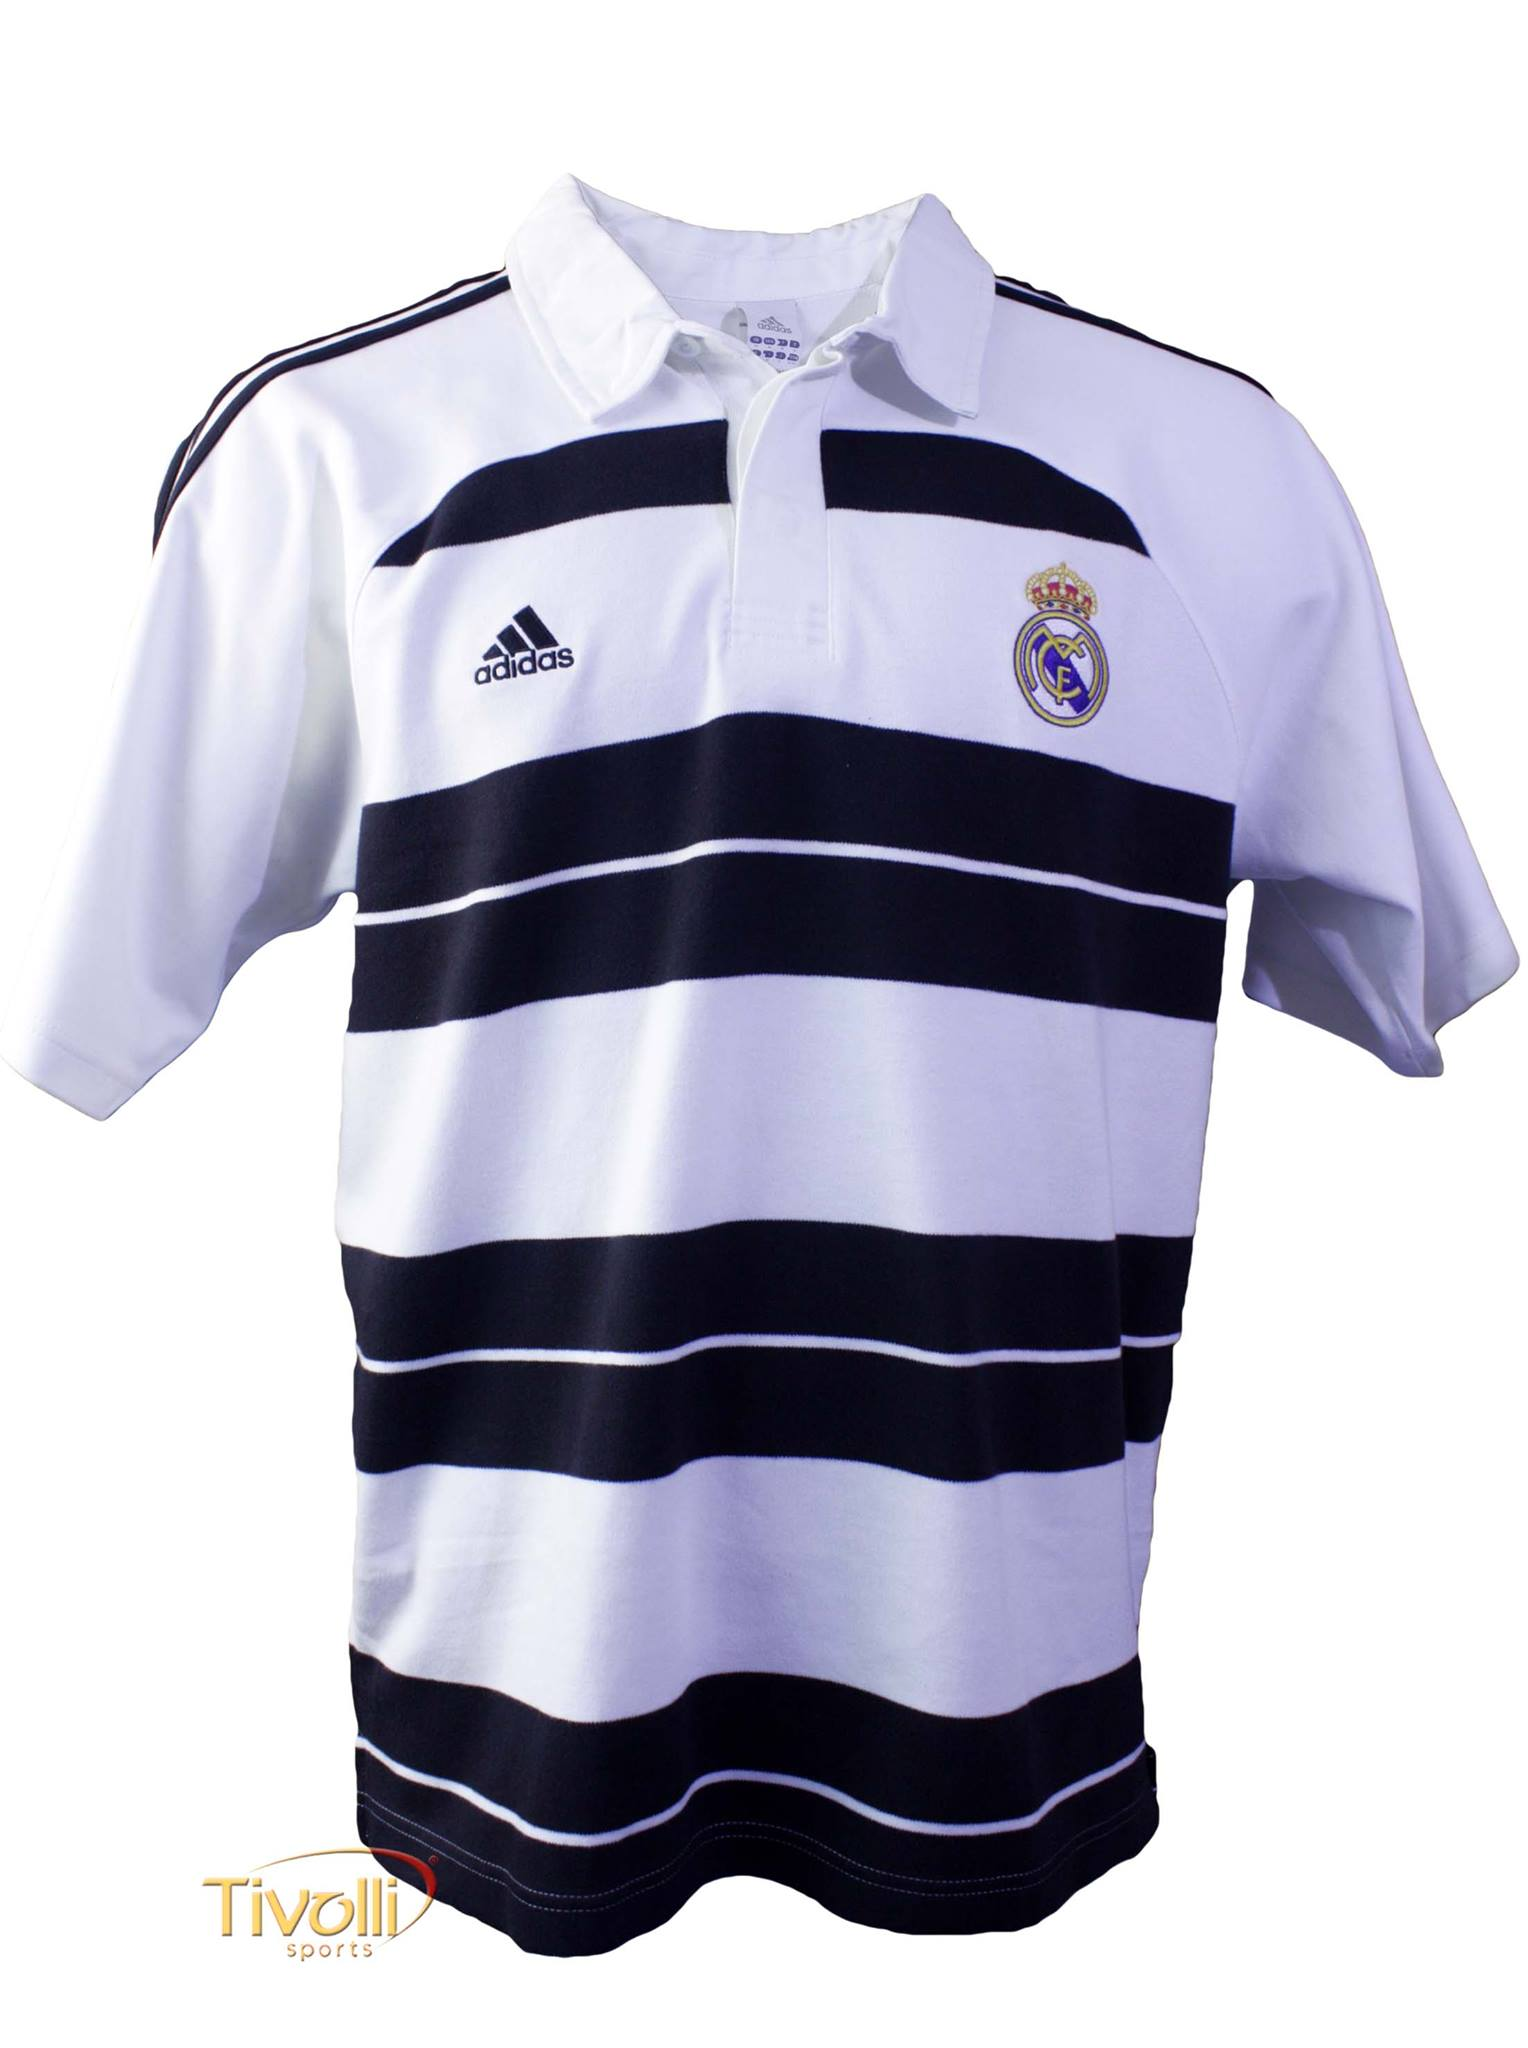 Terapia Monet escaldadura  Camisa Polo Real Madrid Adidas > - Mega Saldão >